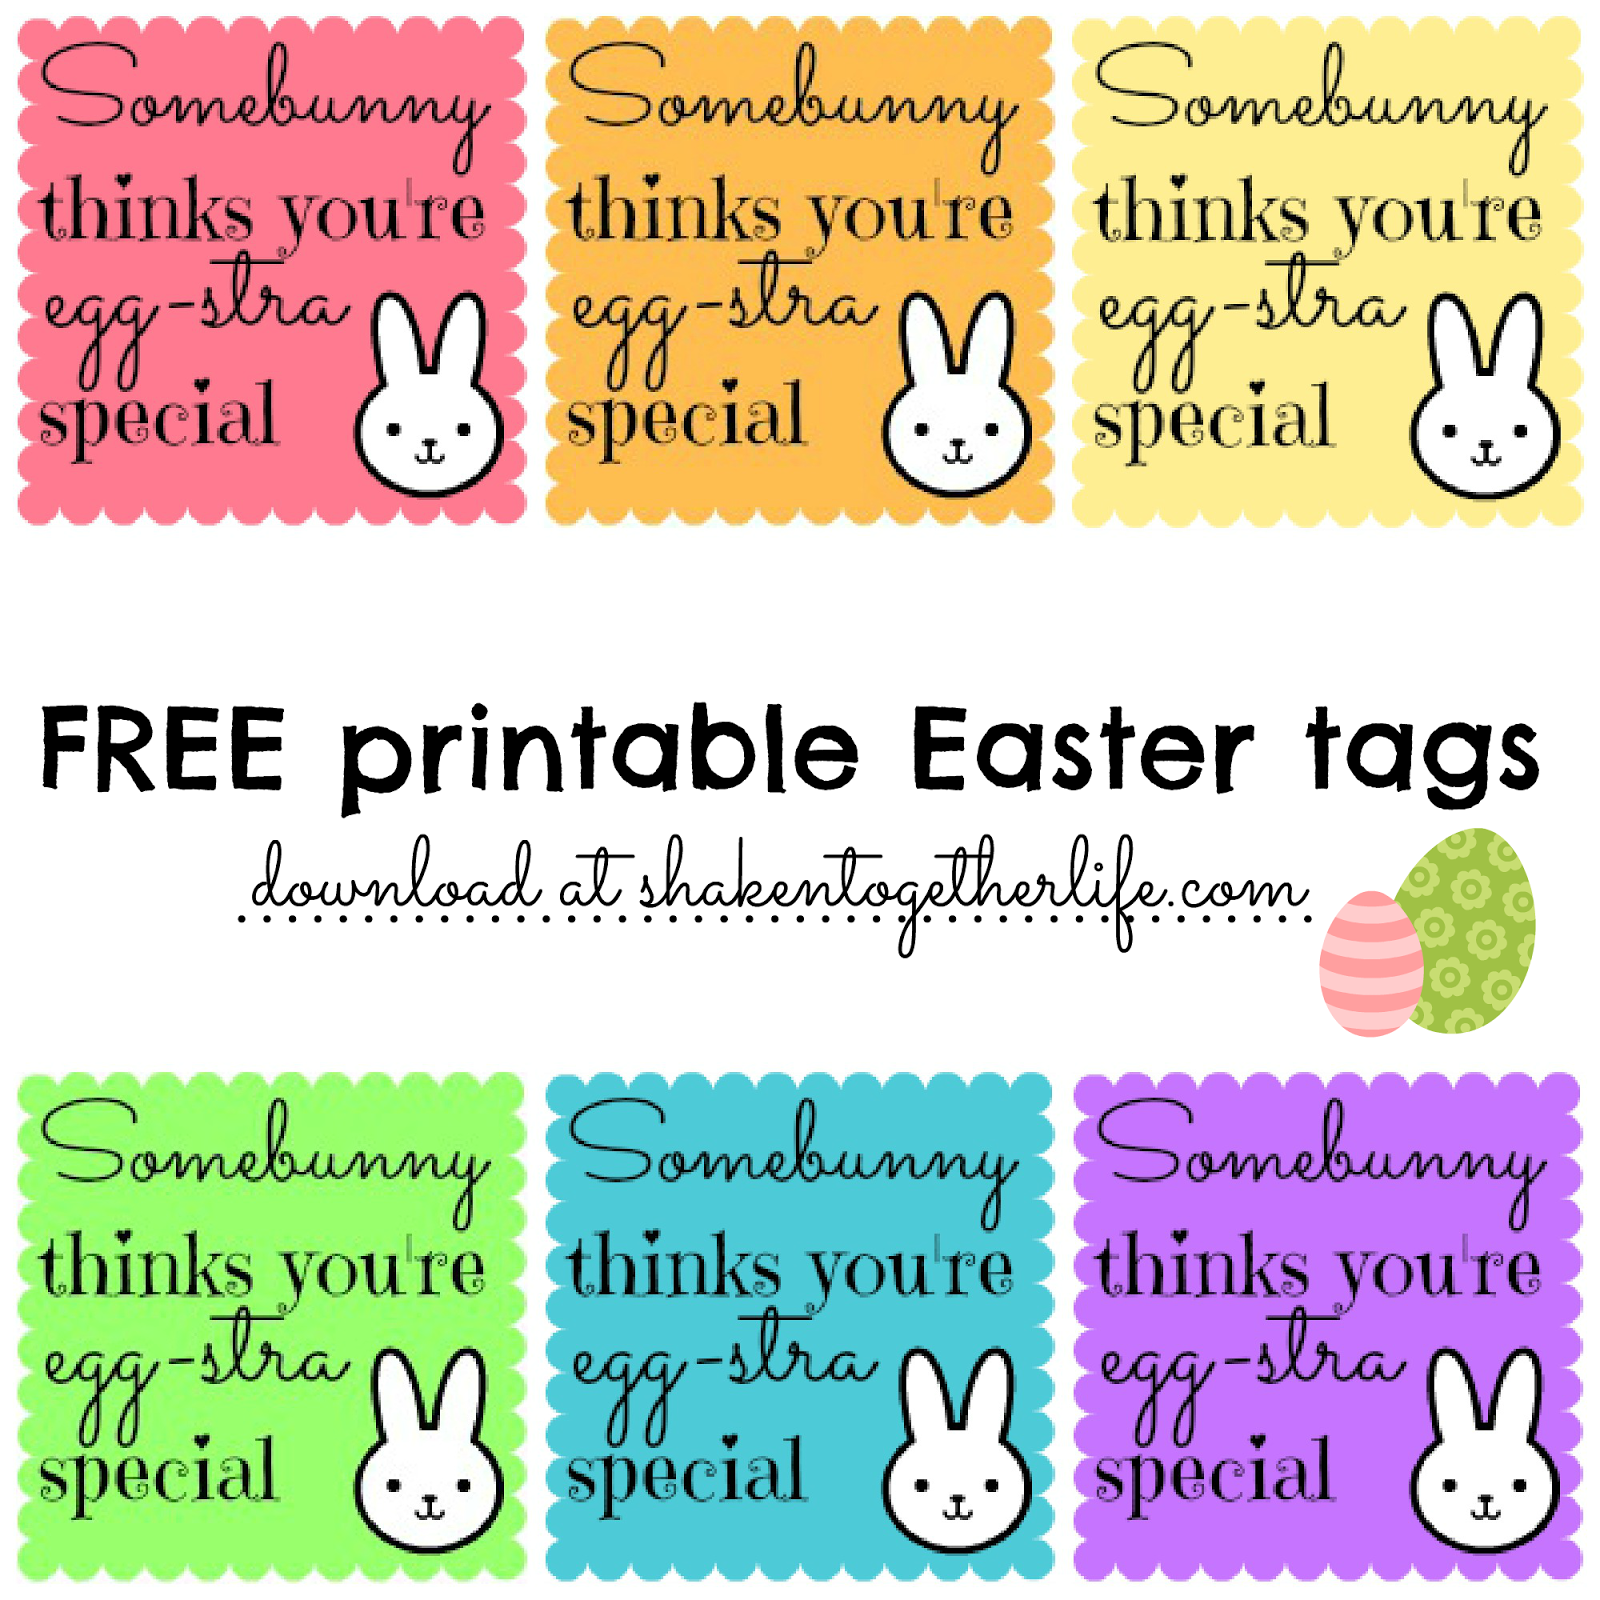 Shaken together create this bunny lip balm gifts for easter somebunny thinks youre egg stra special free printable easter gift tags at shakentogetherlif madi has had a bunny since she was a baby negle Images